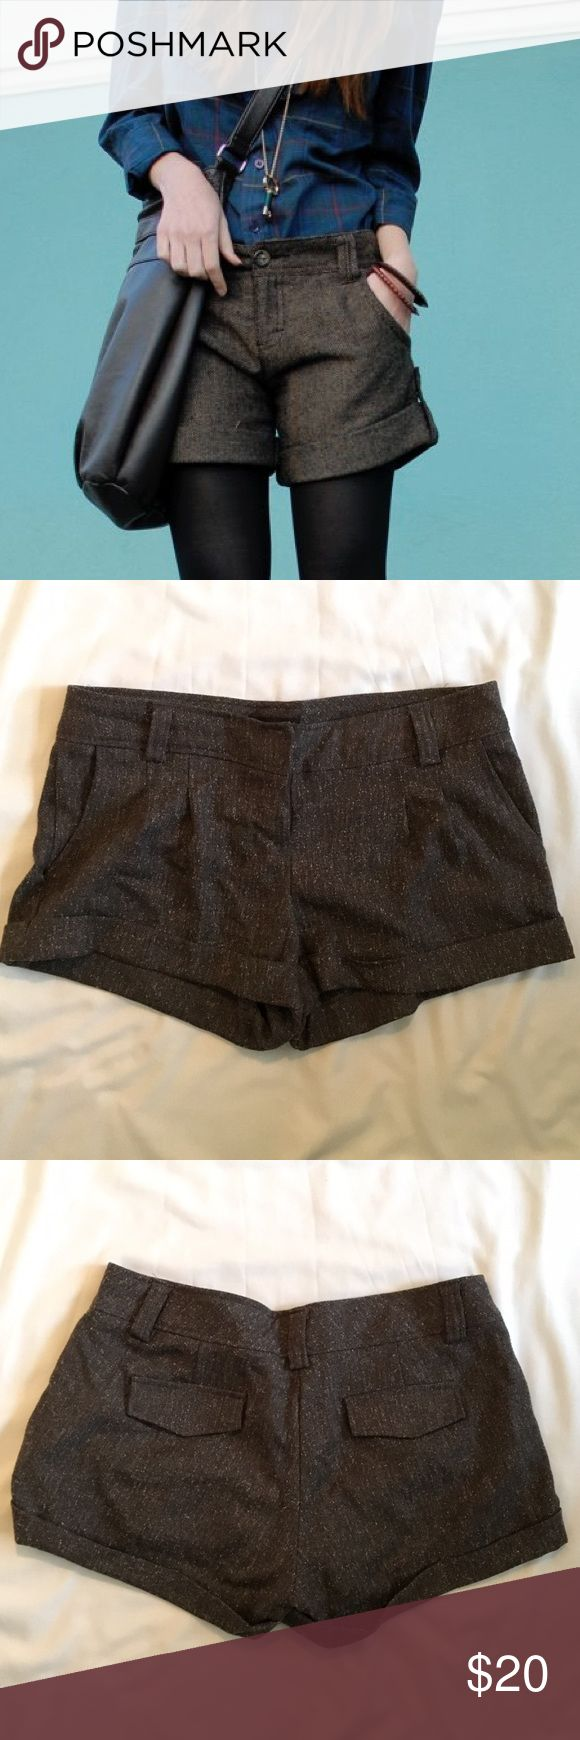 """Perfect faux wool shorts autumn weather style Plaid faux wool shorts perfect for transitional autumn weather style them with tights and a sweater for the perfect fall look 2.5"""" inseam Shorts"""